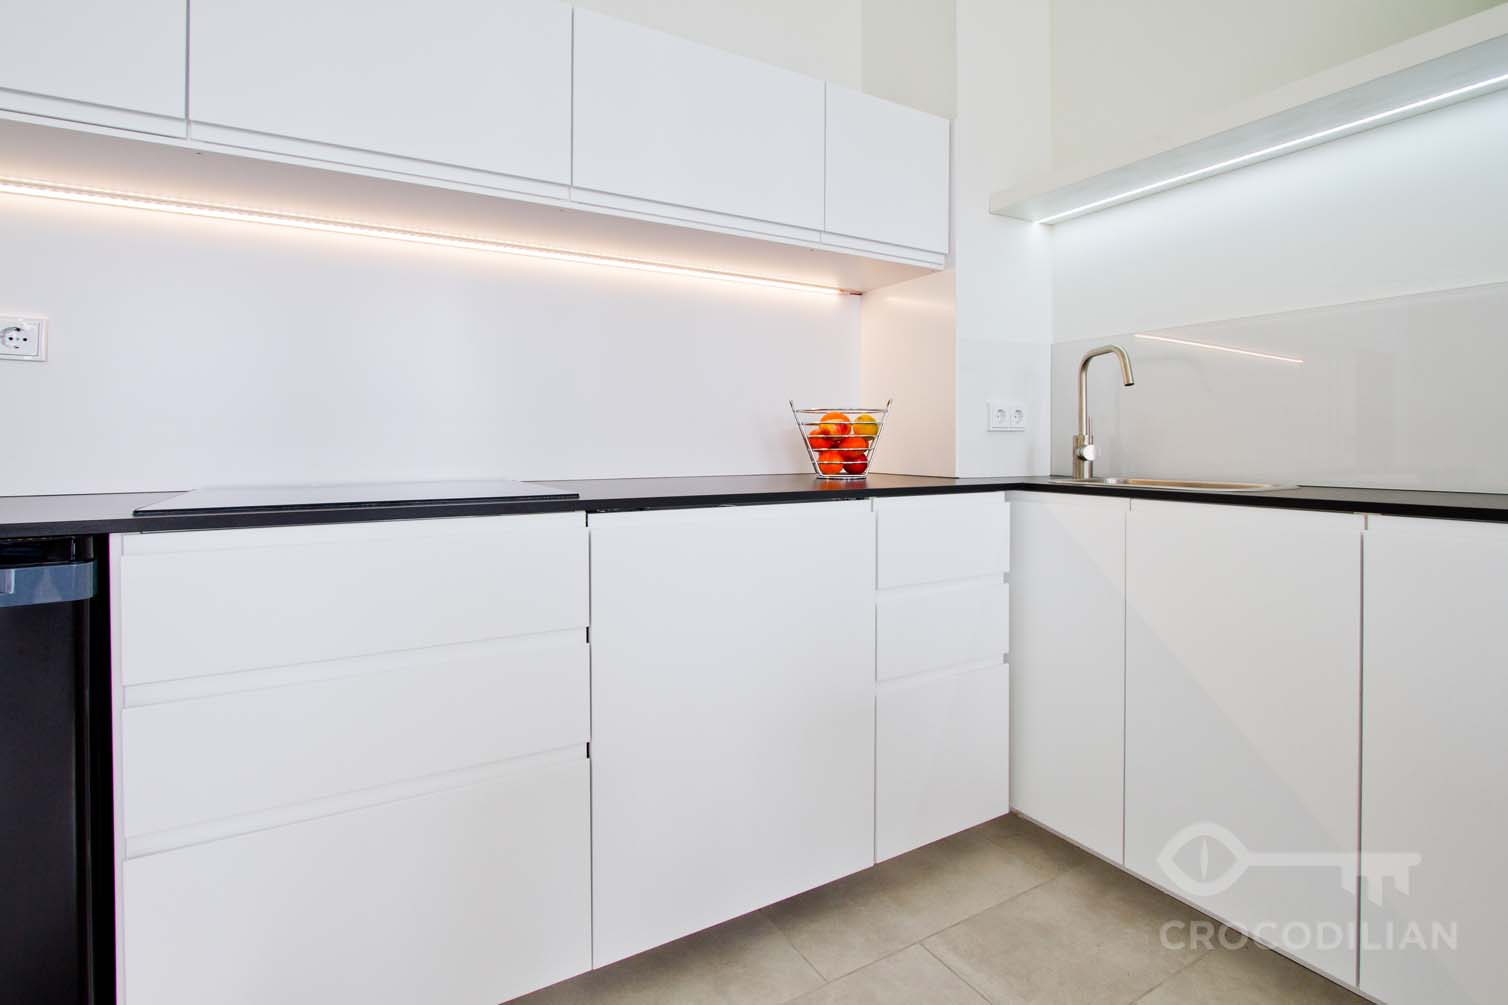 Very central and modern 2-Room Flat with Roof Terrace in Kommandantenstr.